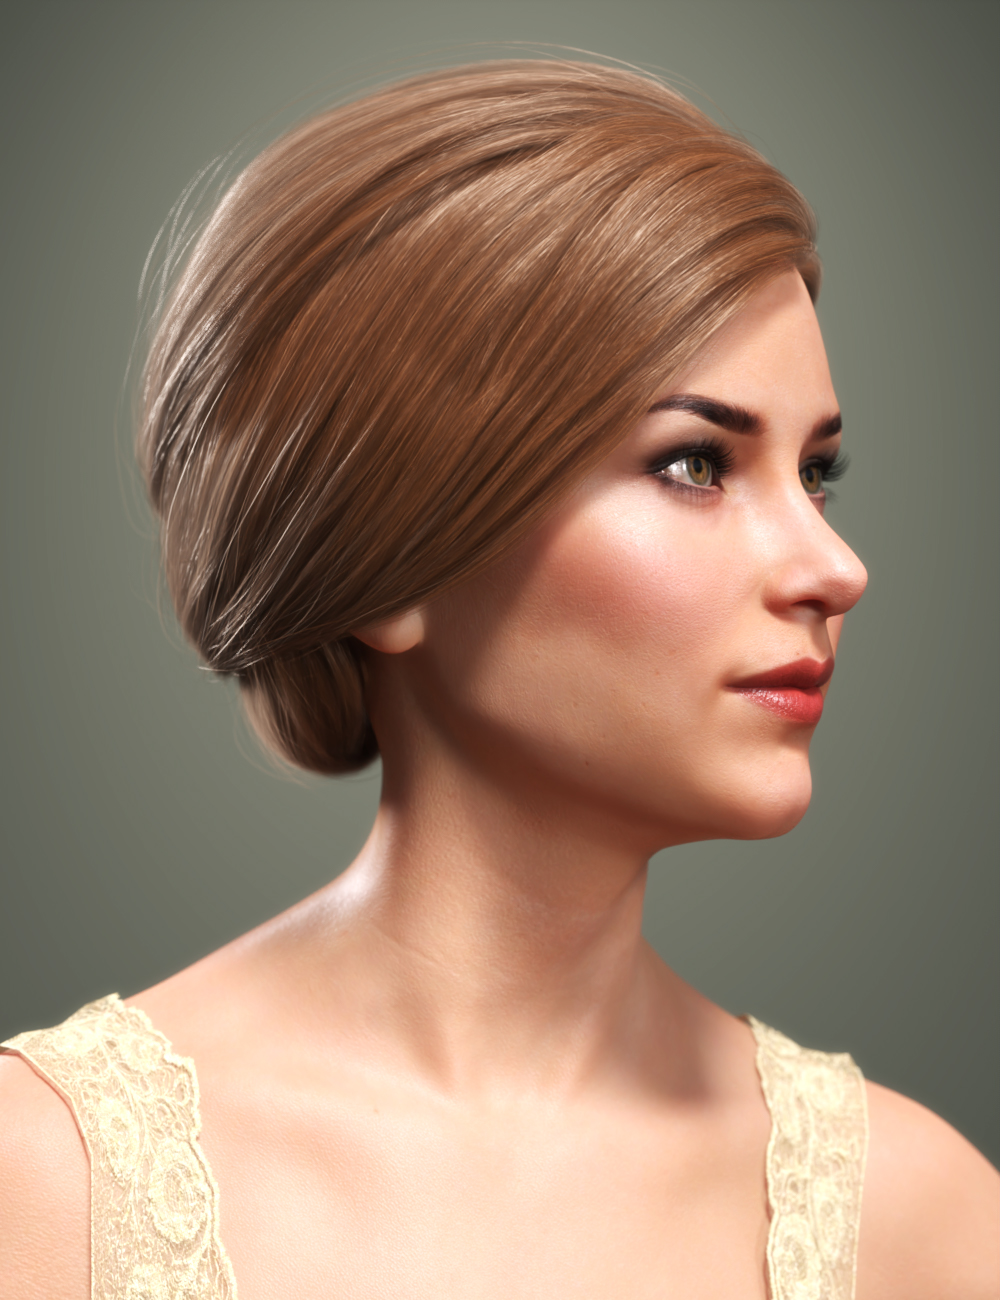 SP Hair 017 for Genesis 3 and 8 Females by: Sarah Payne, 3D Models by Daz 3D